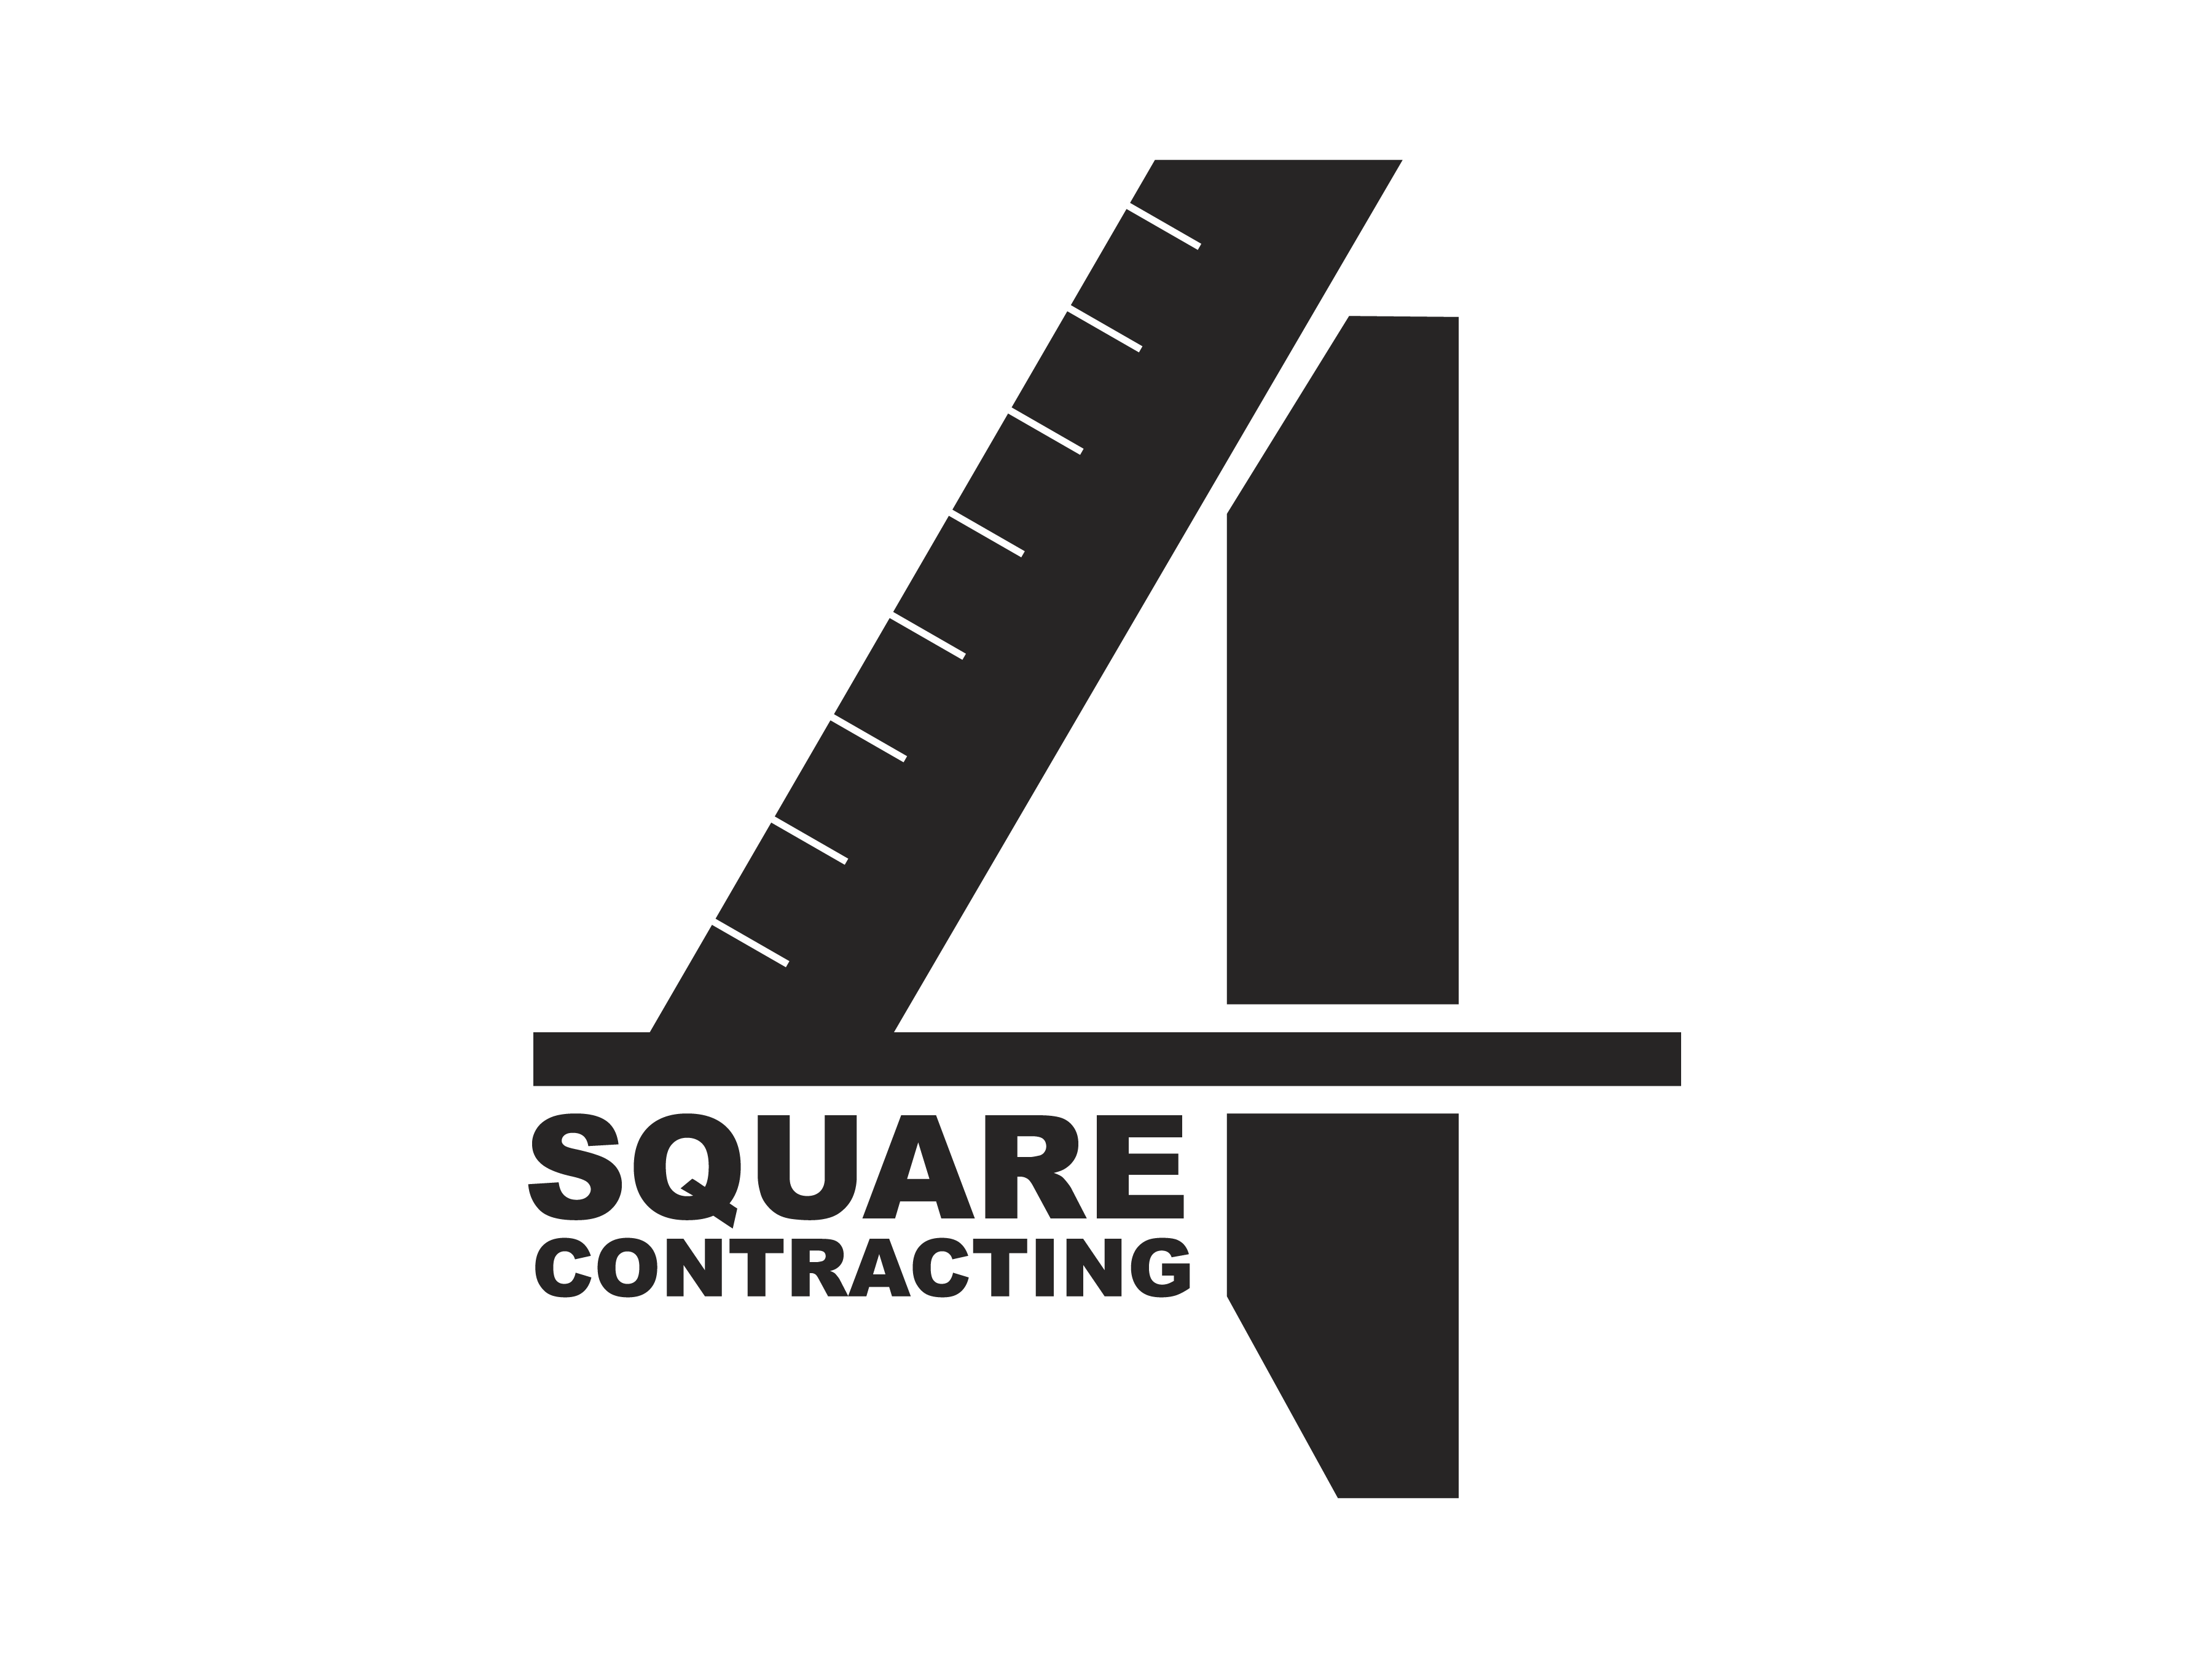 4 Square Contracting